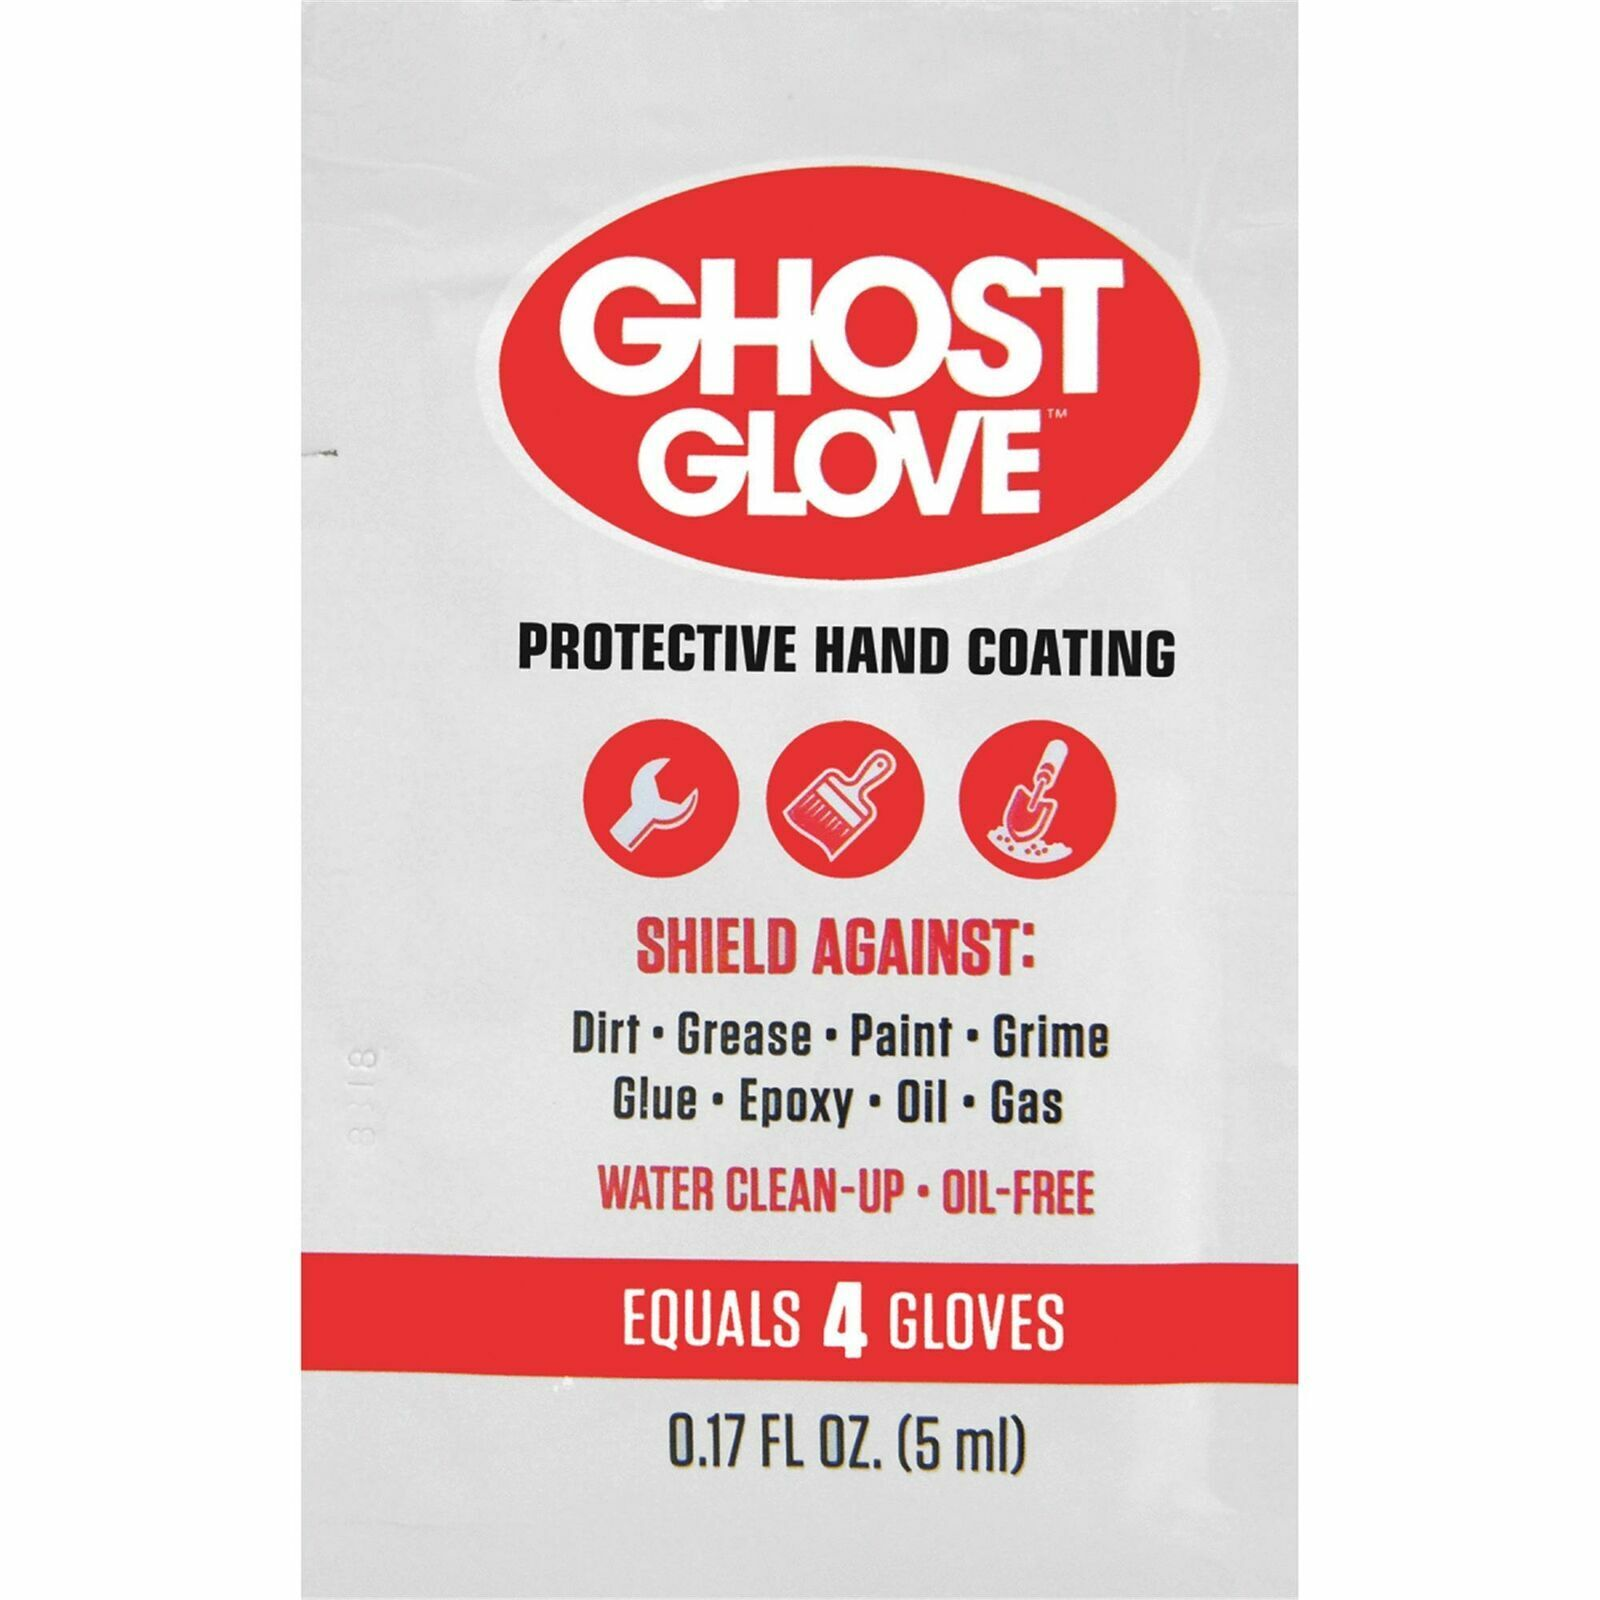 Ghost Glove Protective Hand Coating 0.17 Oz Packets, Each equivalent to 4 Gloves Health & Beauty